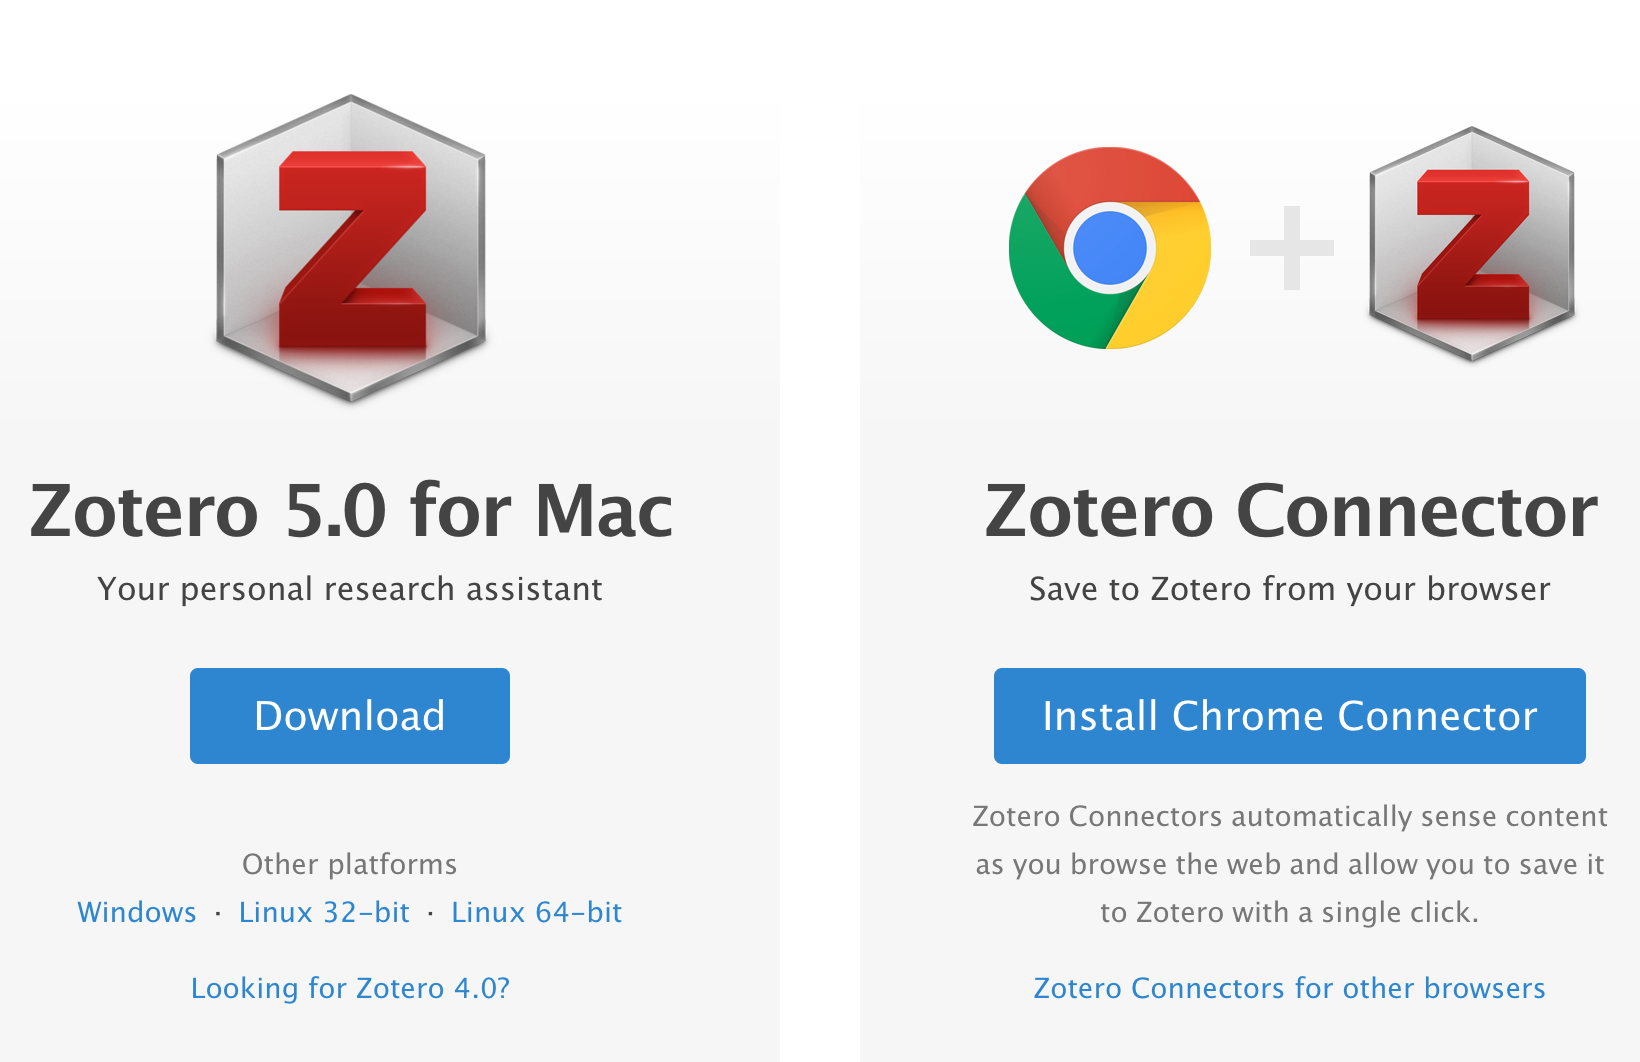 Zotero 5.0 and Zotero Connector download screen